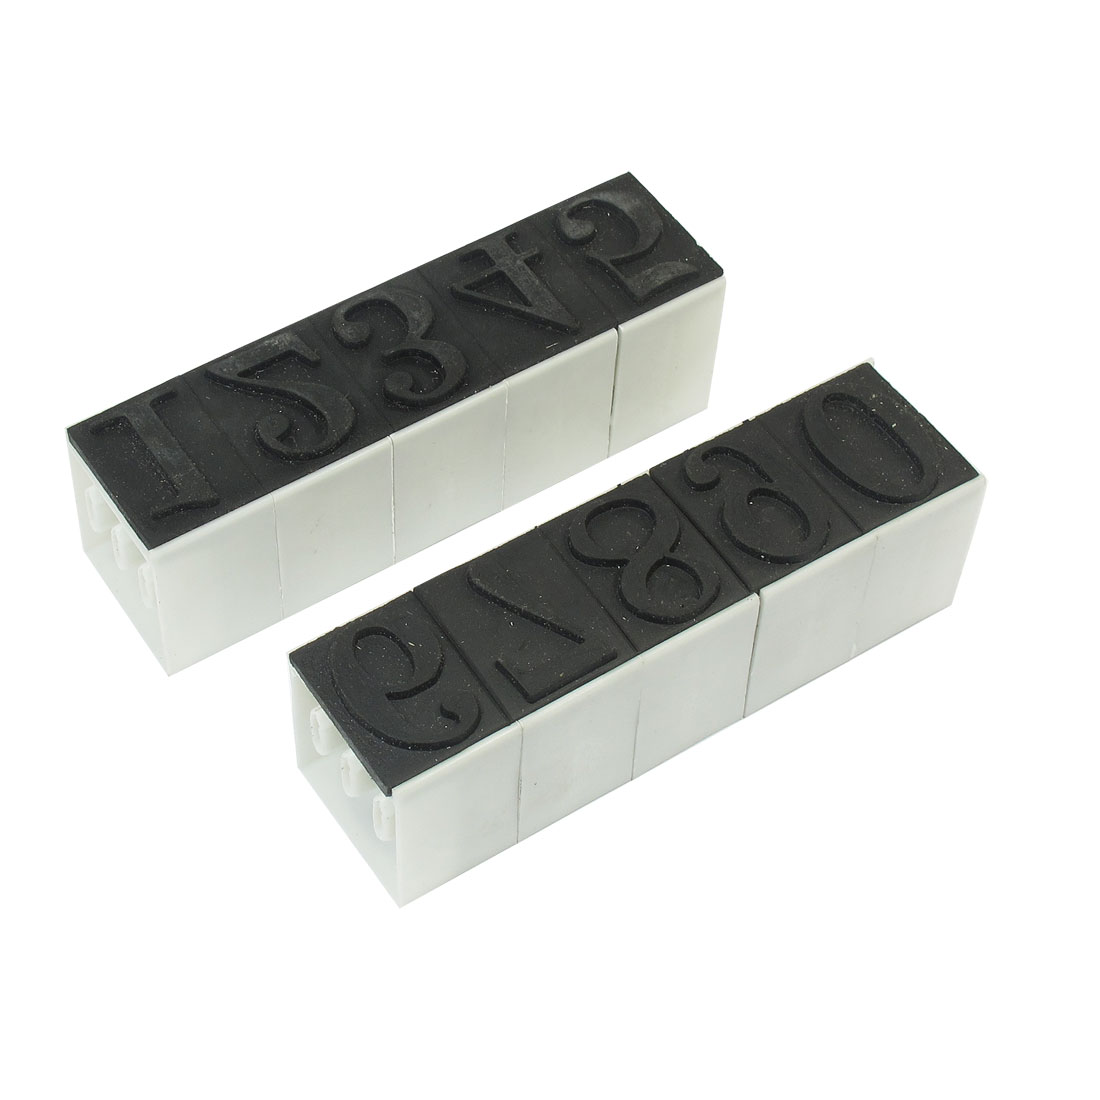 Black White 28mm x 19mm 0-9 Munber Rubber Base Plastic Digital Stamp Seal for Financial